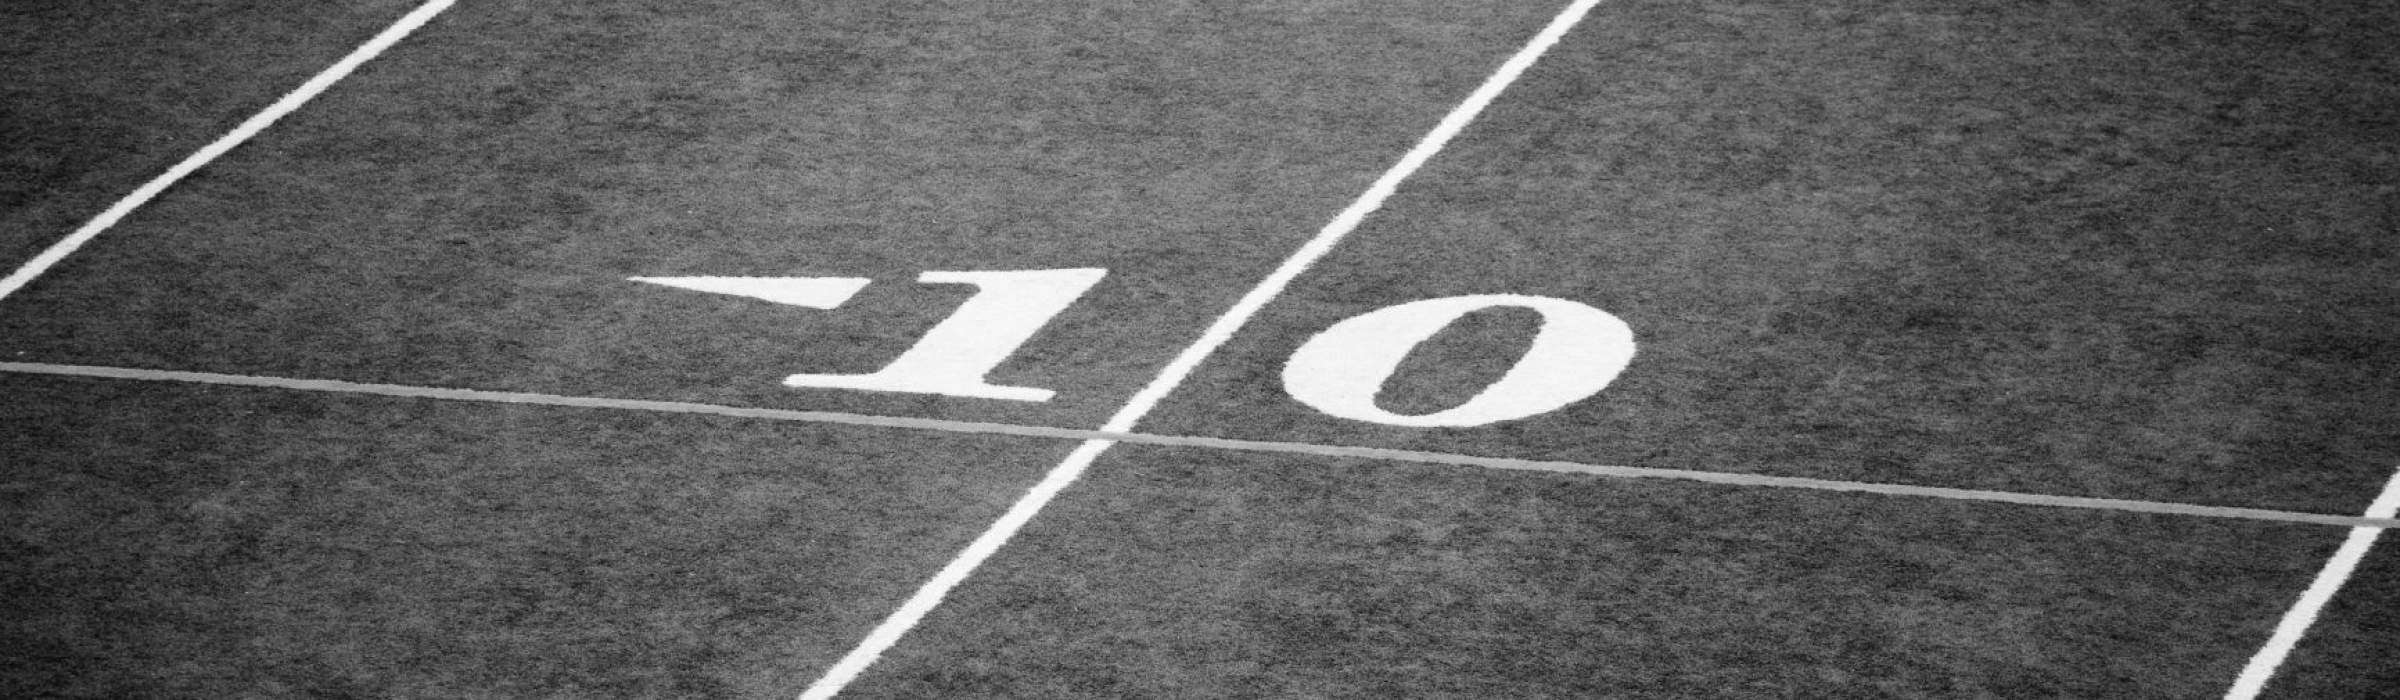 The 10 yard line of a football field